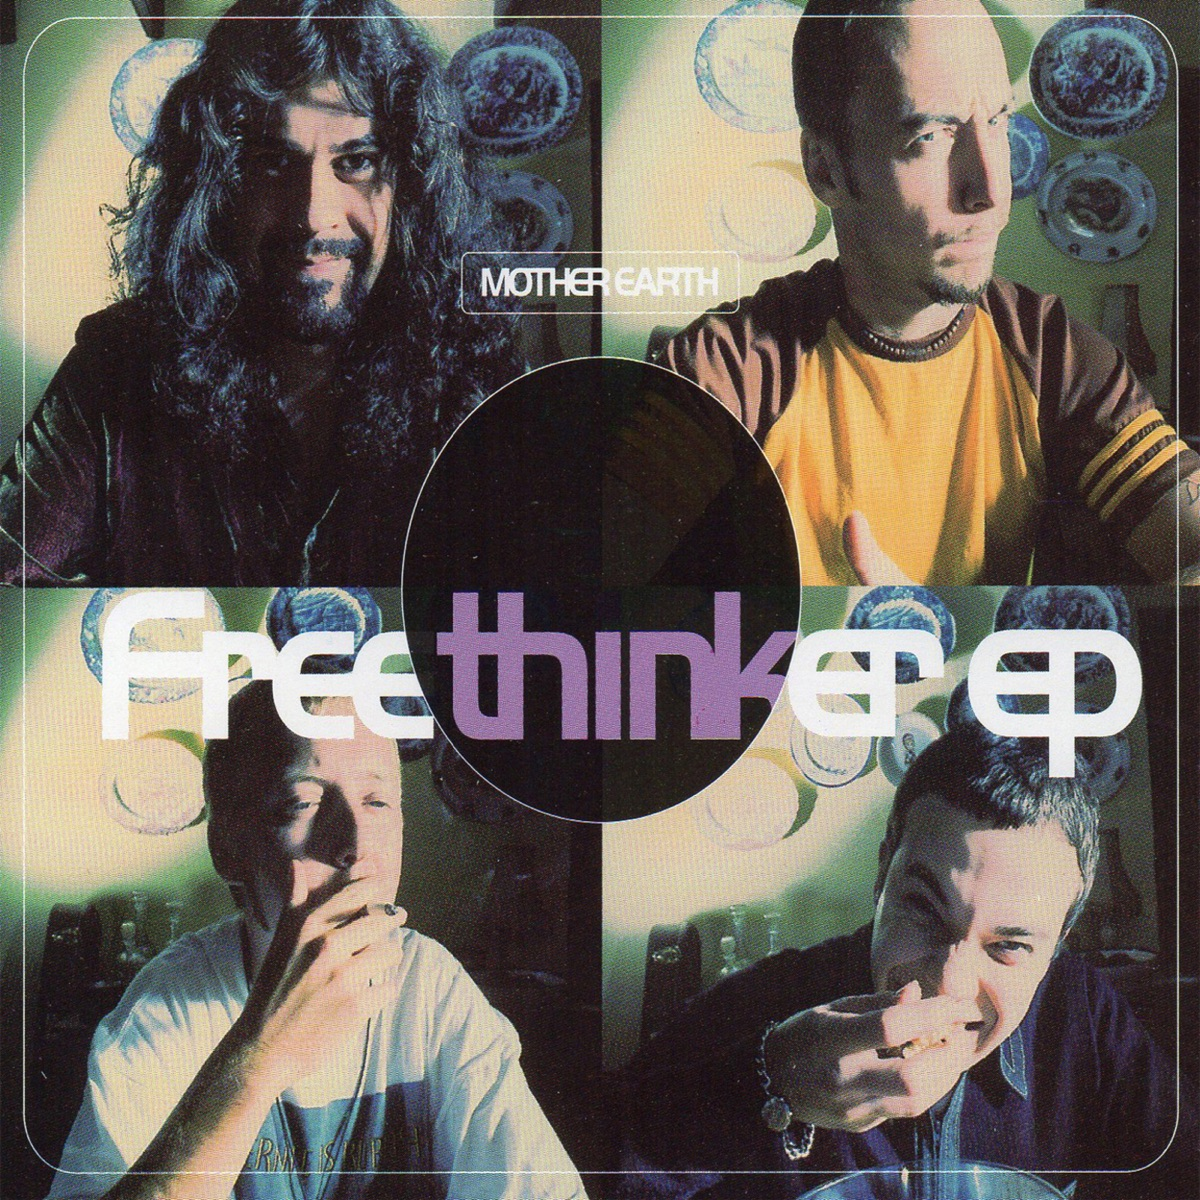 The Freethinker - EP Mother Earth CD cover